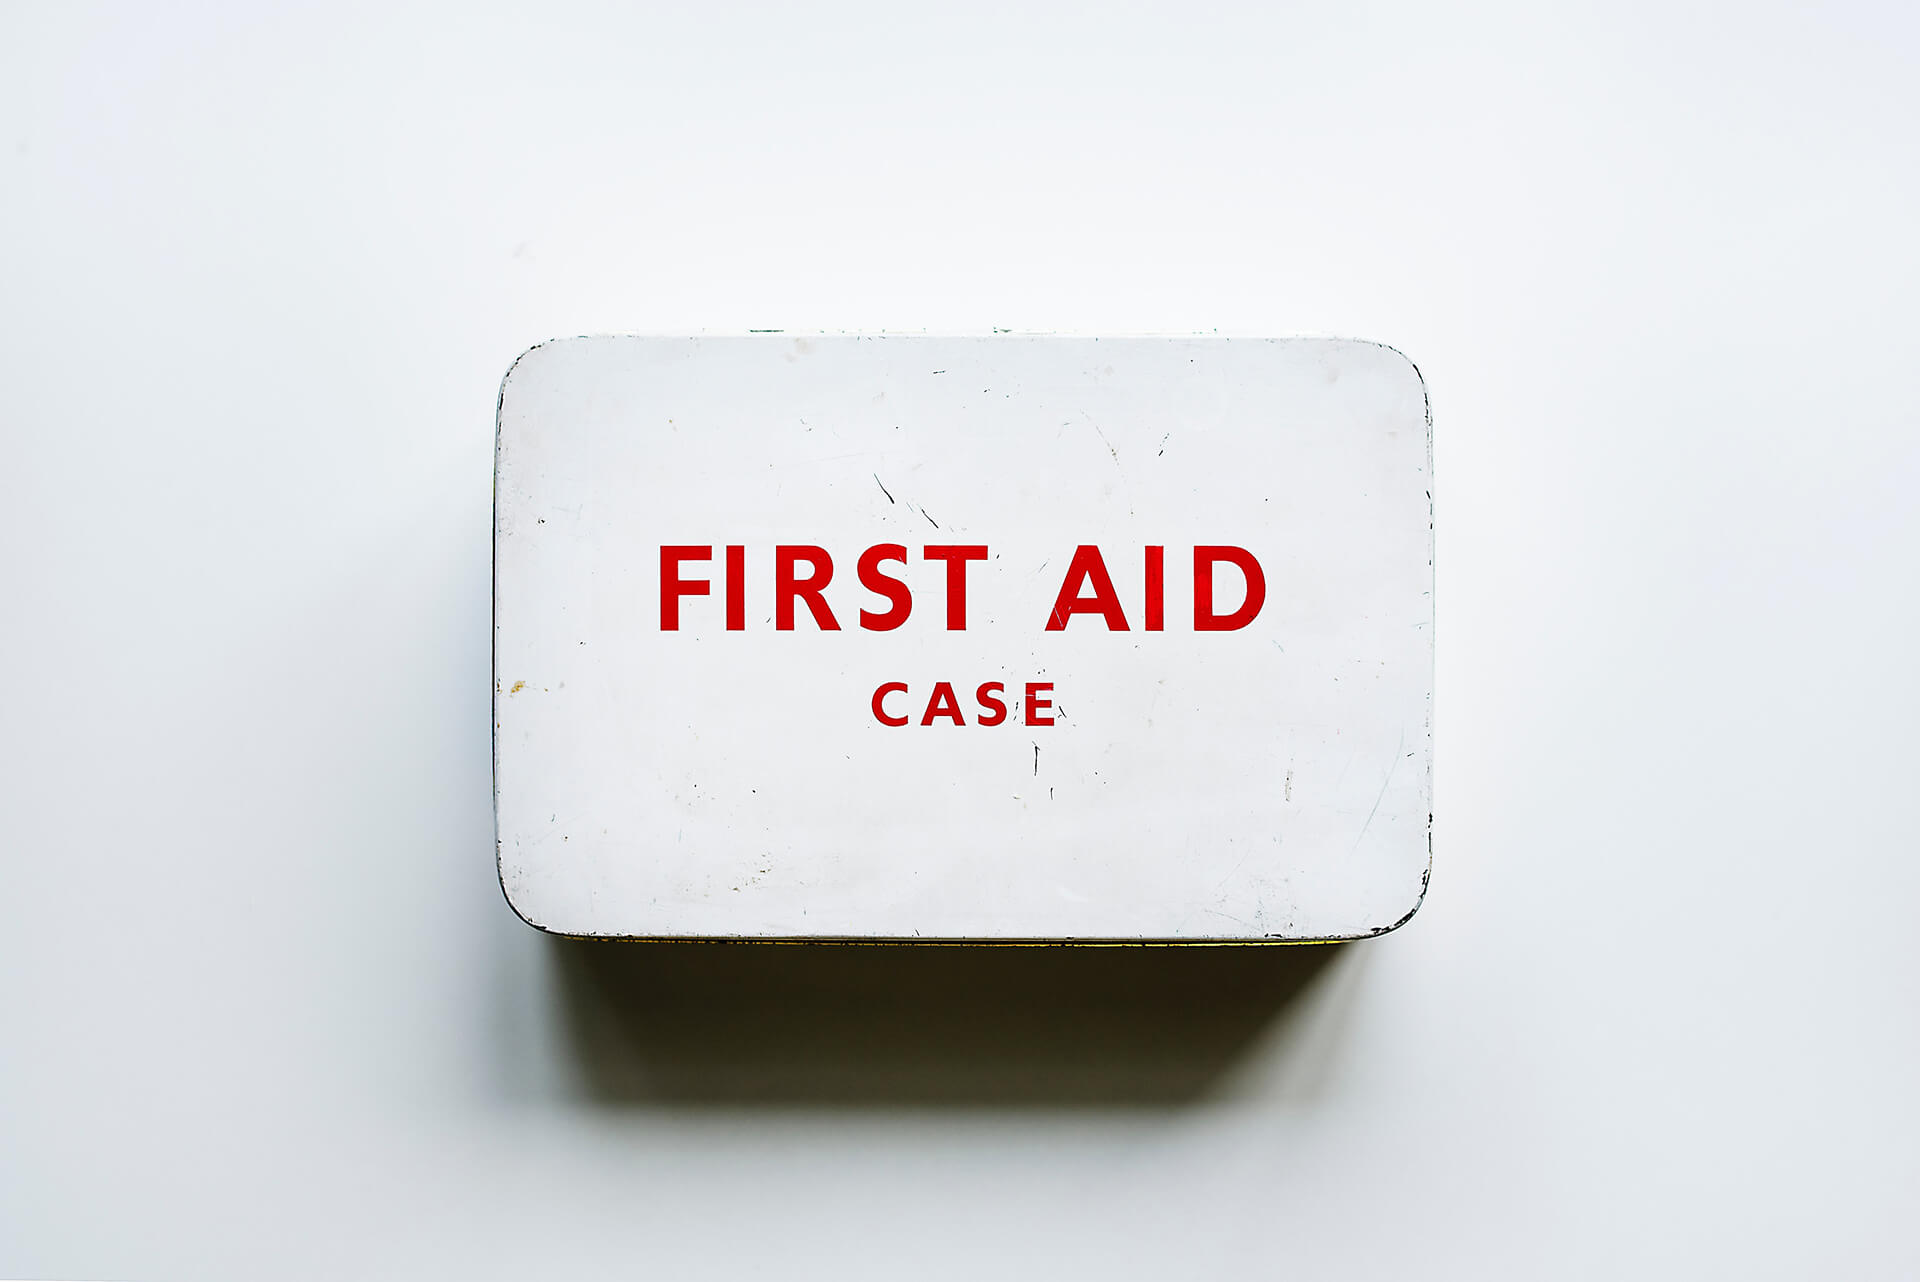 First aid 3 course details